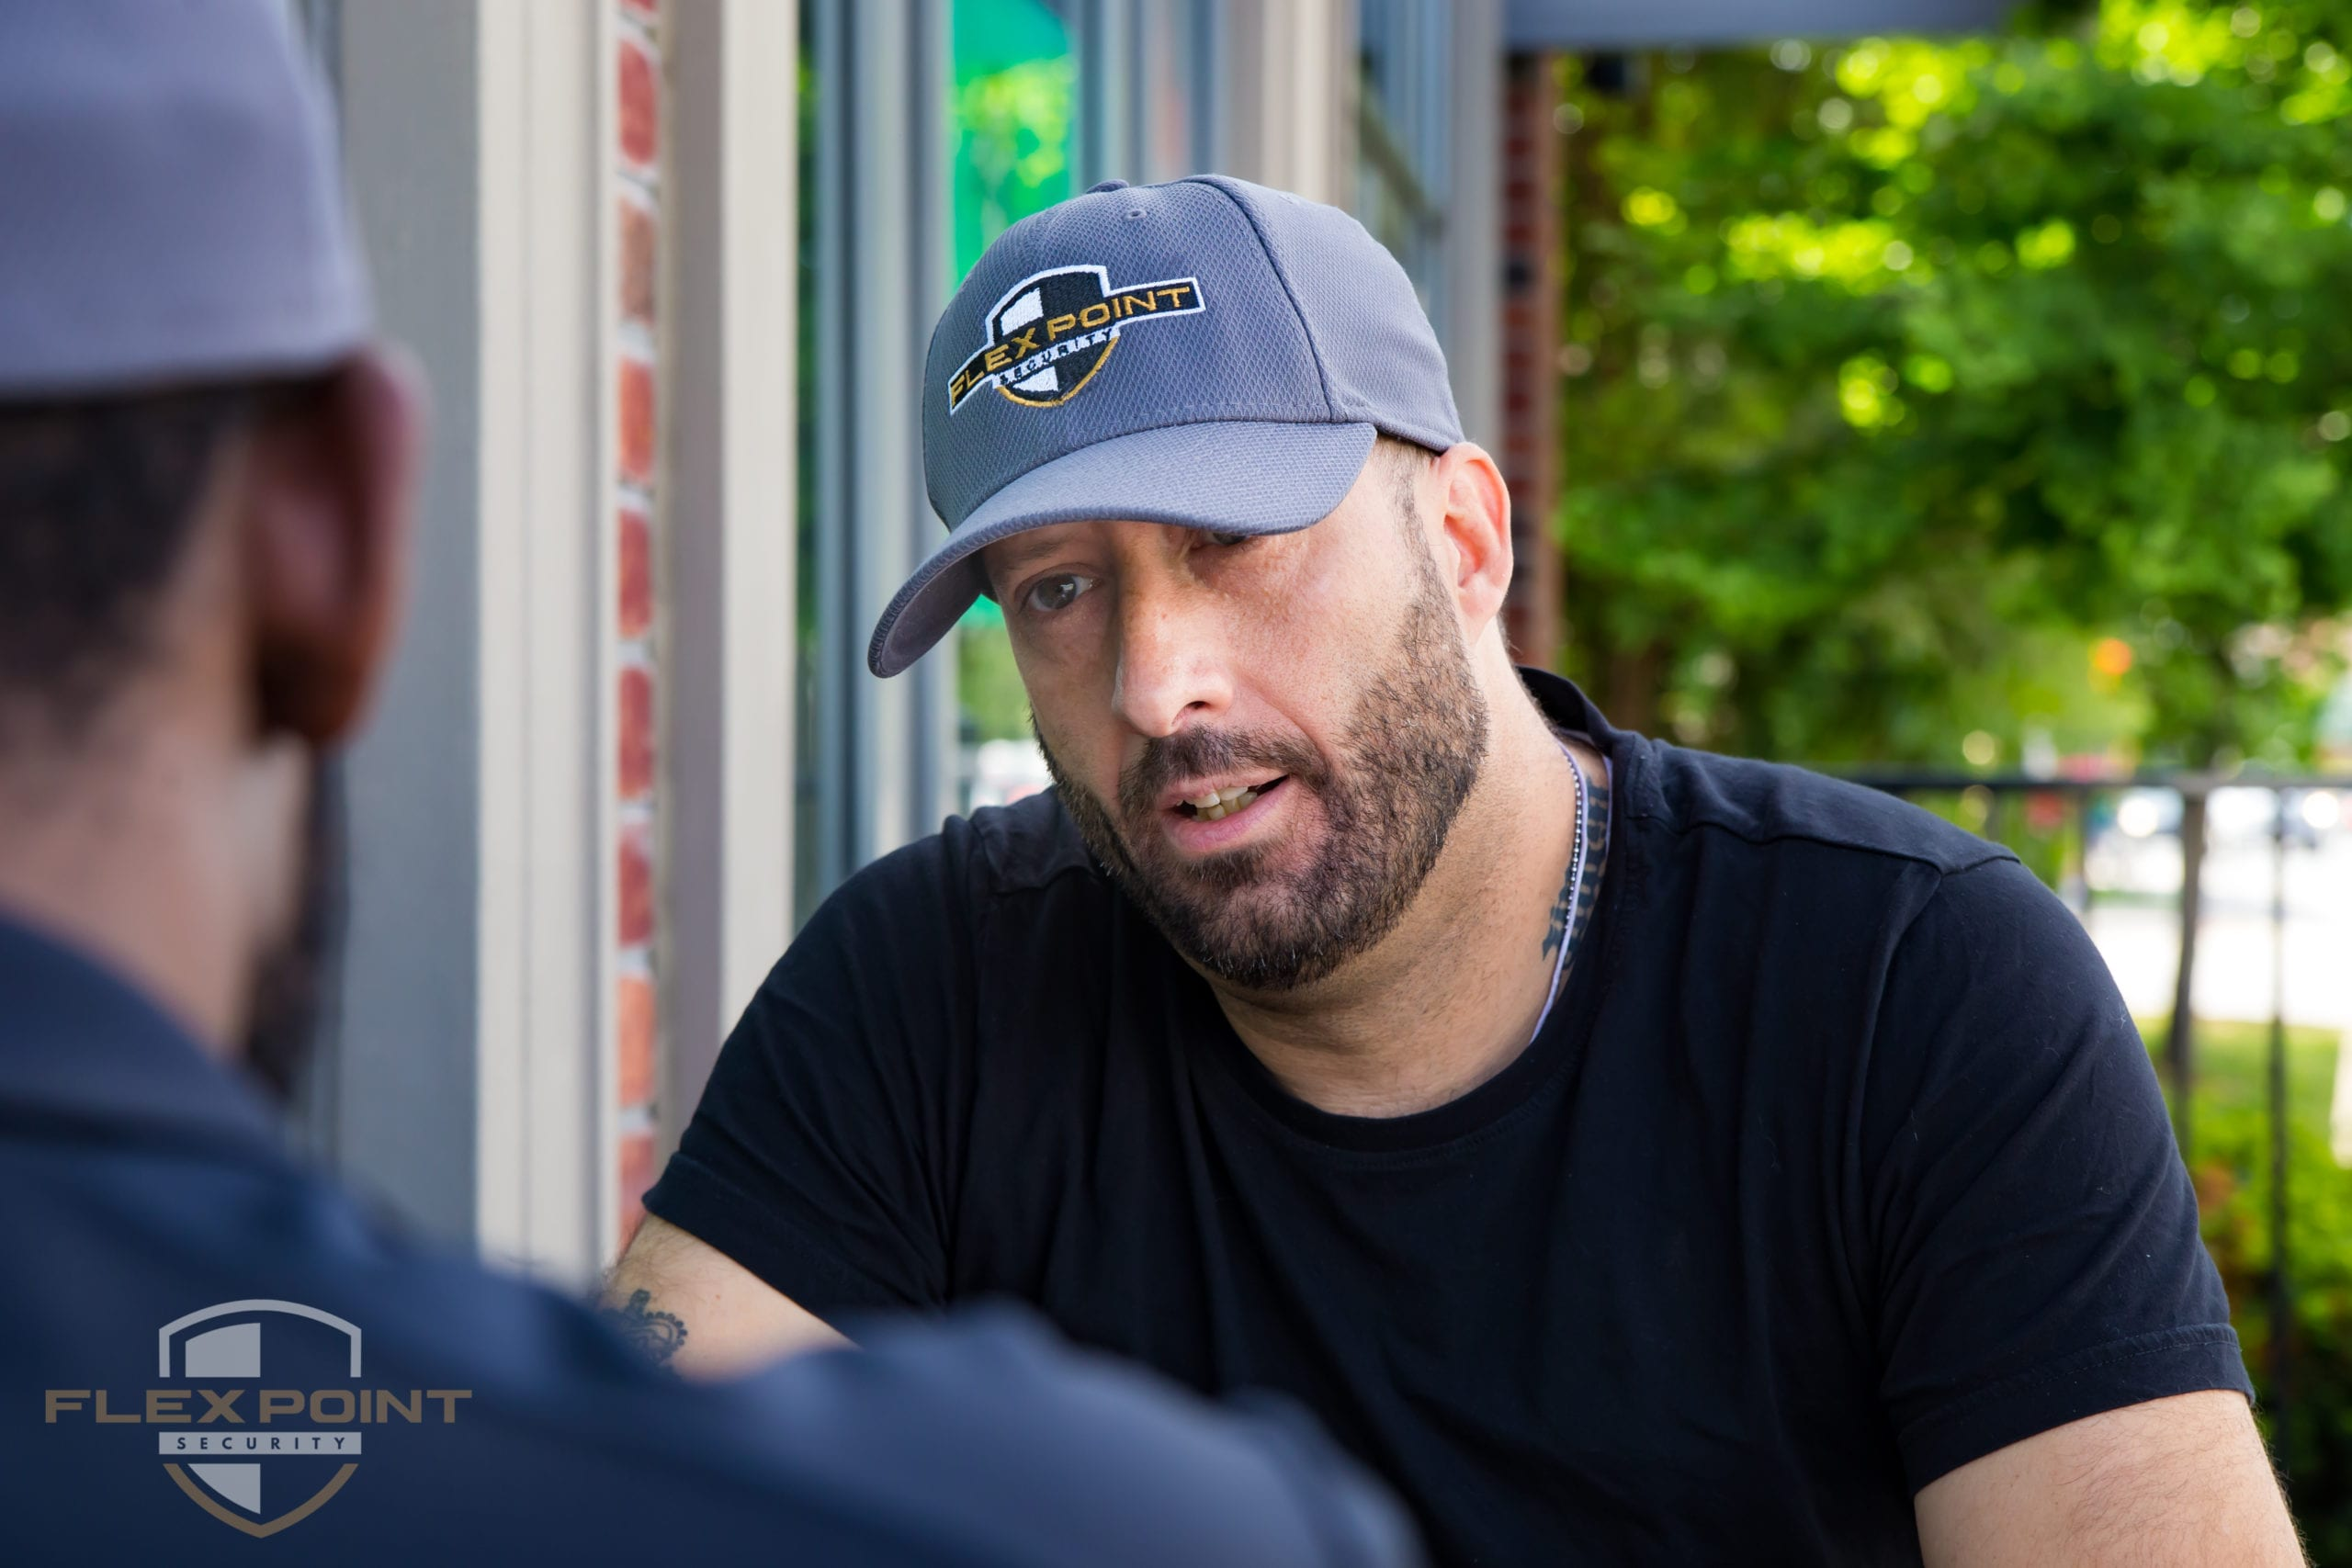 Two Flex Point Security guards wearing branded hats outside of a residence having a discussion